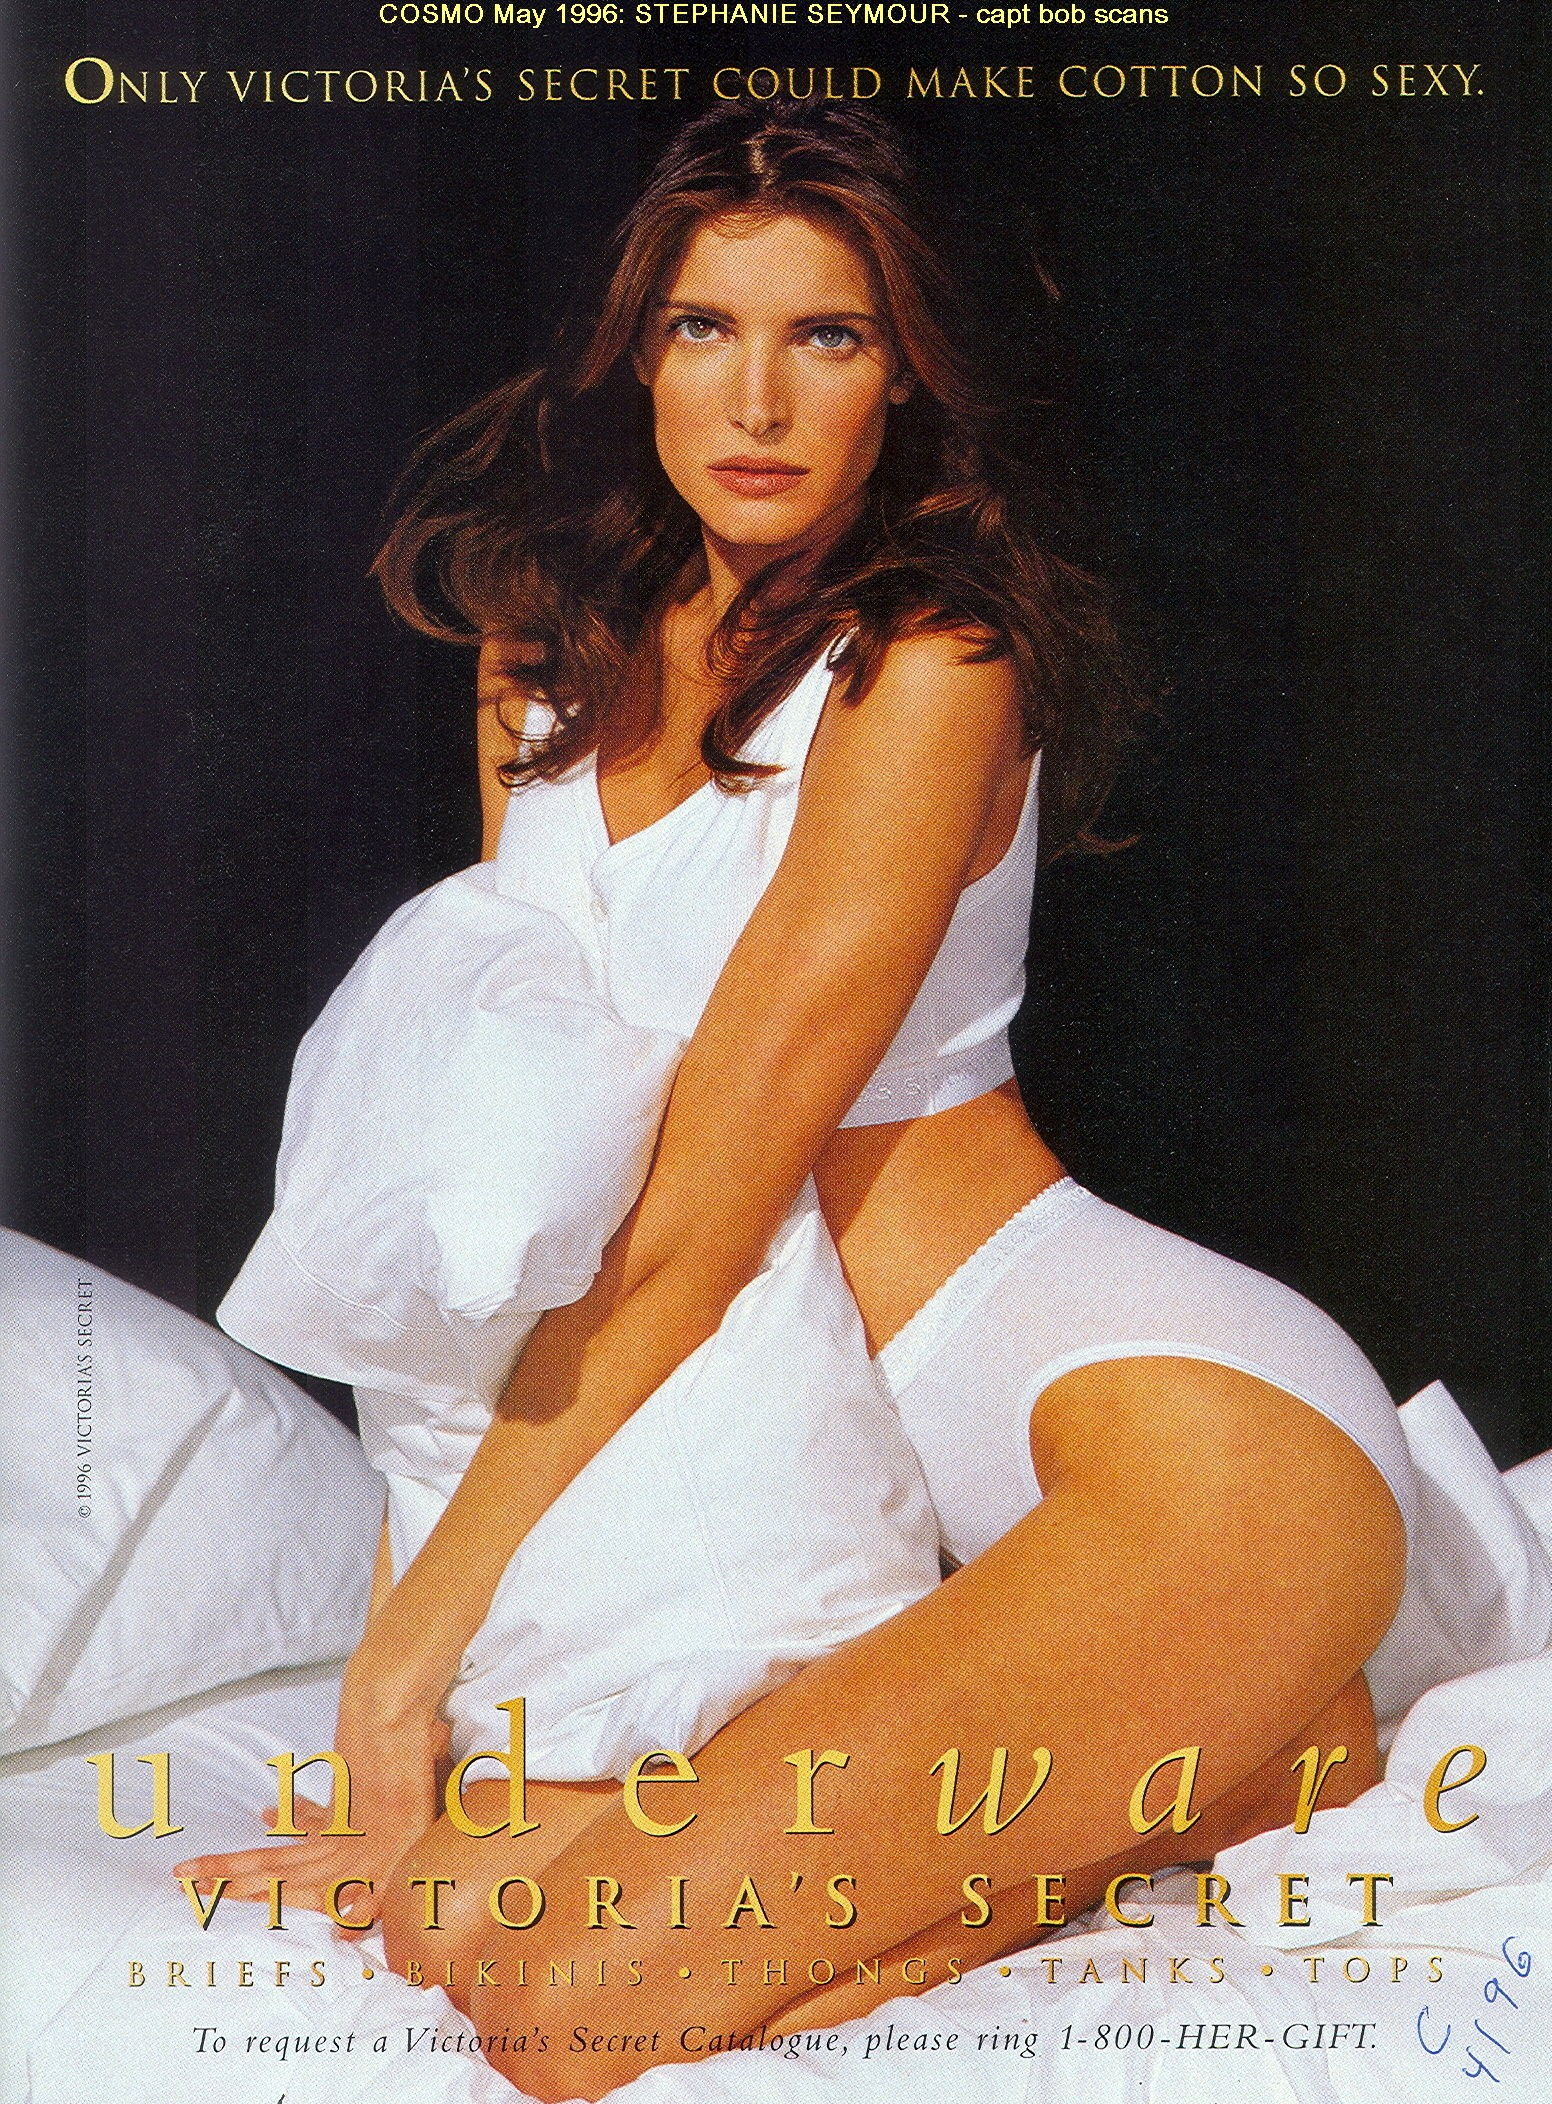 69086_1996-04-cosmo-66-1-vsc-stephanieSeymour1-h-afx1_122_421lo.jpg